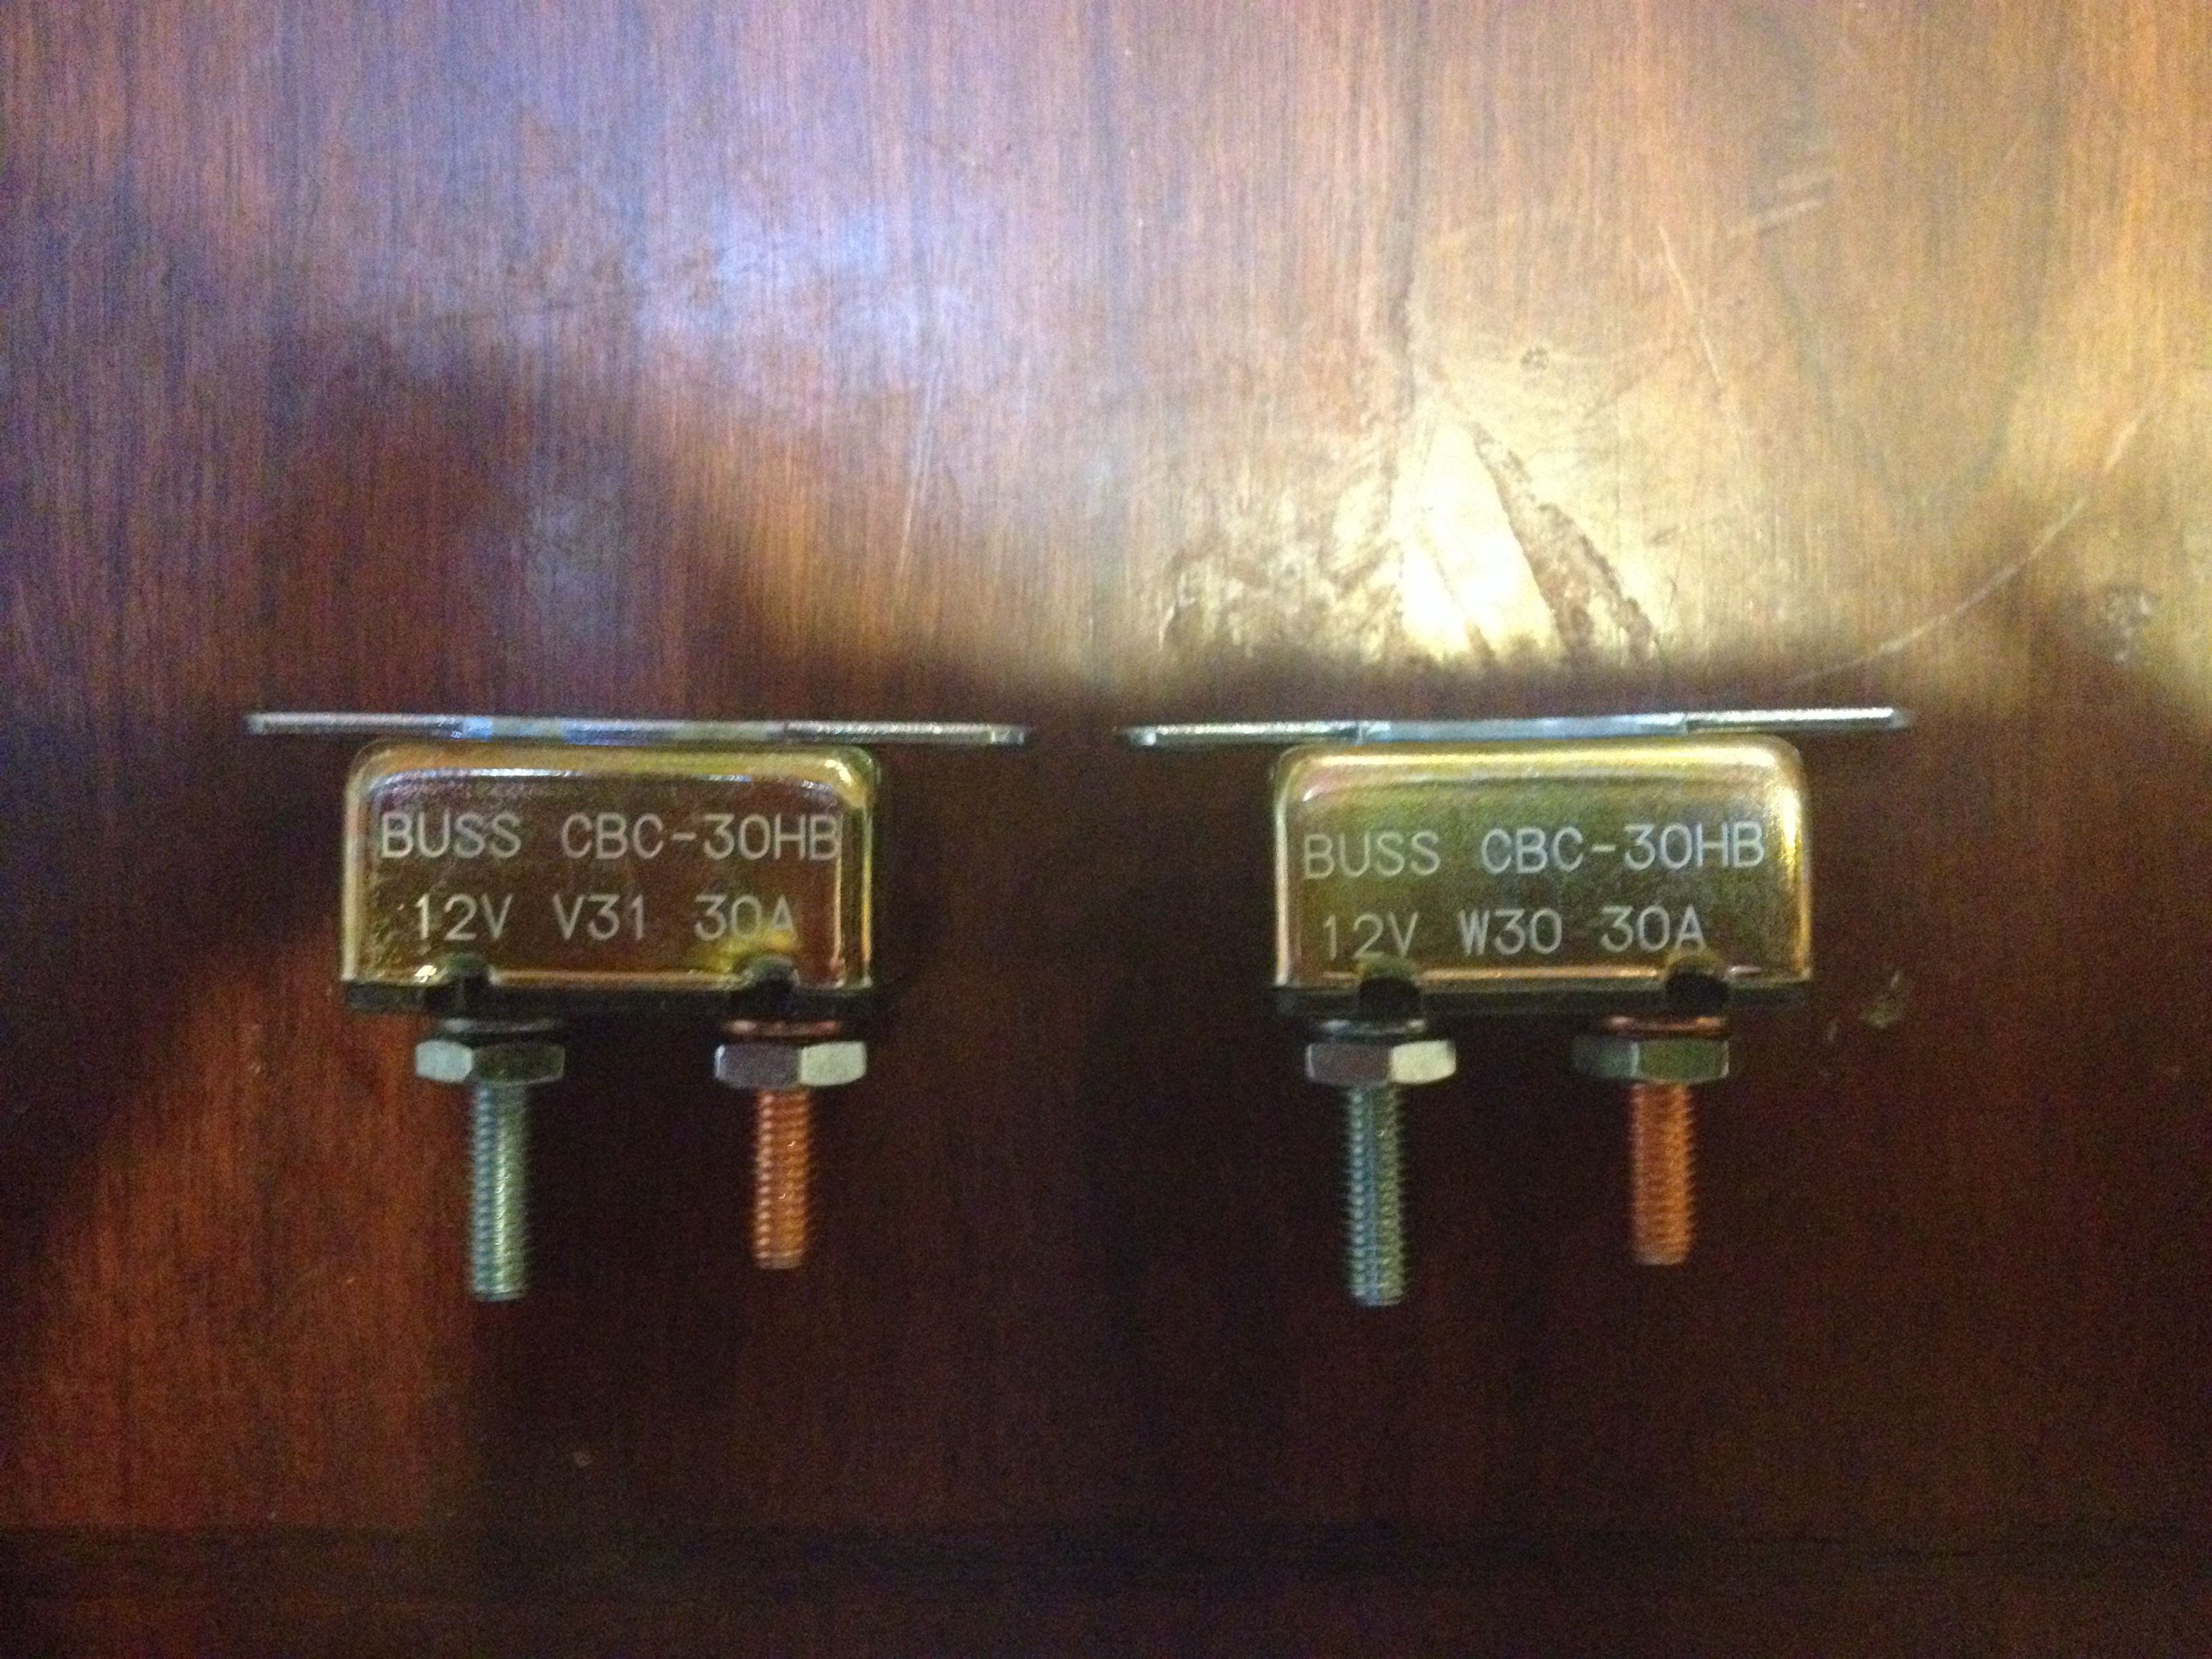 30 amp circuit breaker - one for each light pair *a 30 amp fuse can be used  in place of the breaker. I chose the breaker because it was about the same  ...